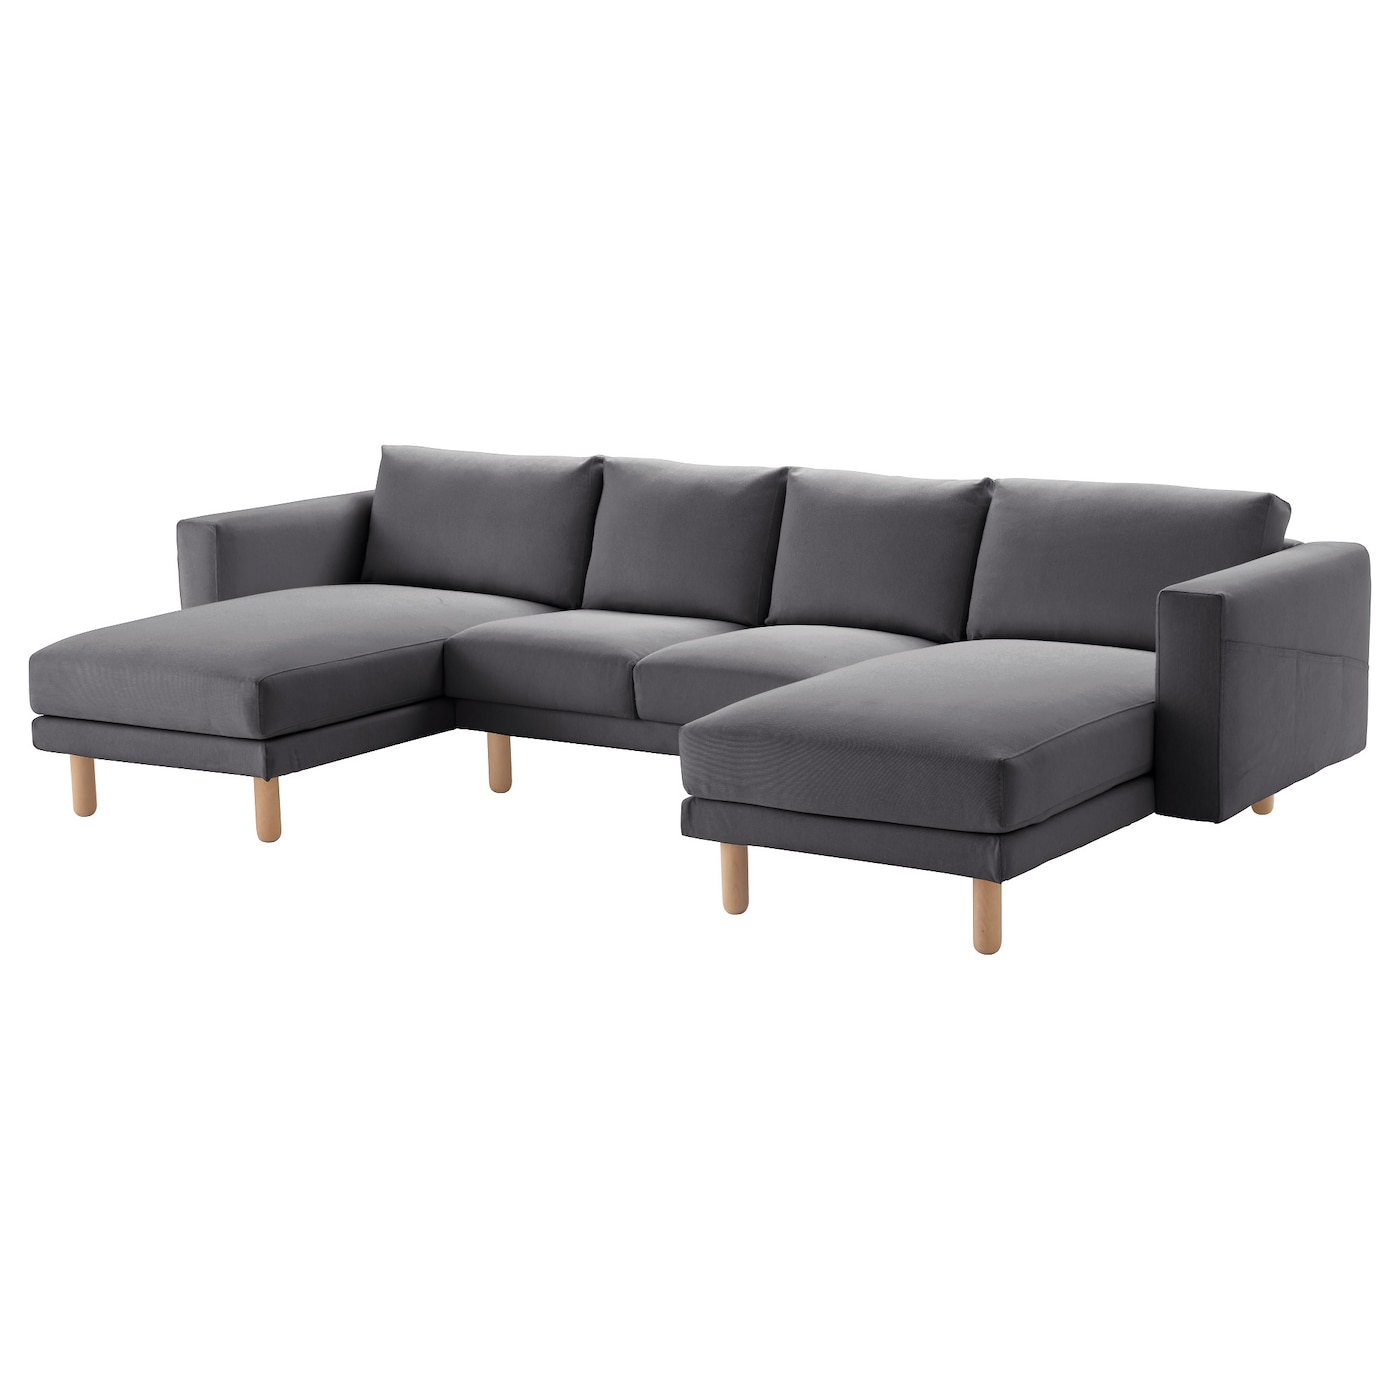 Norsborg 2 seat sofa with 2 chaise longues finnsta dark for 2 seater sofa with chaise